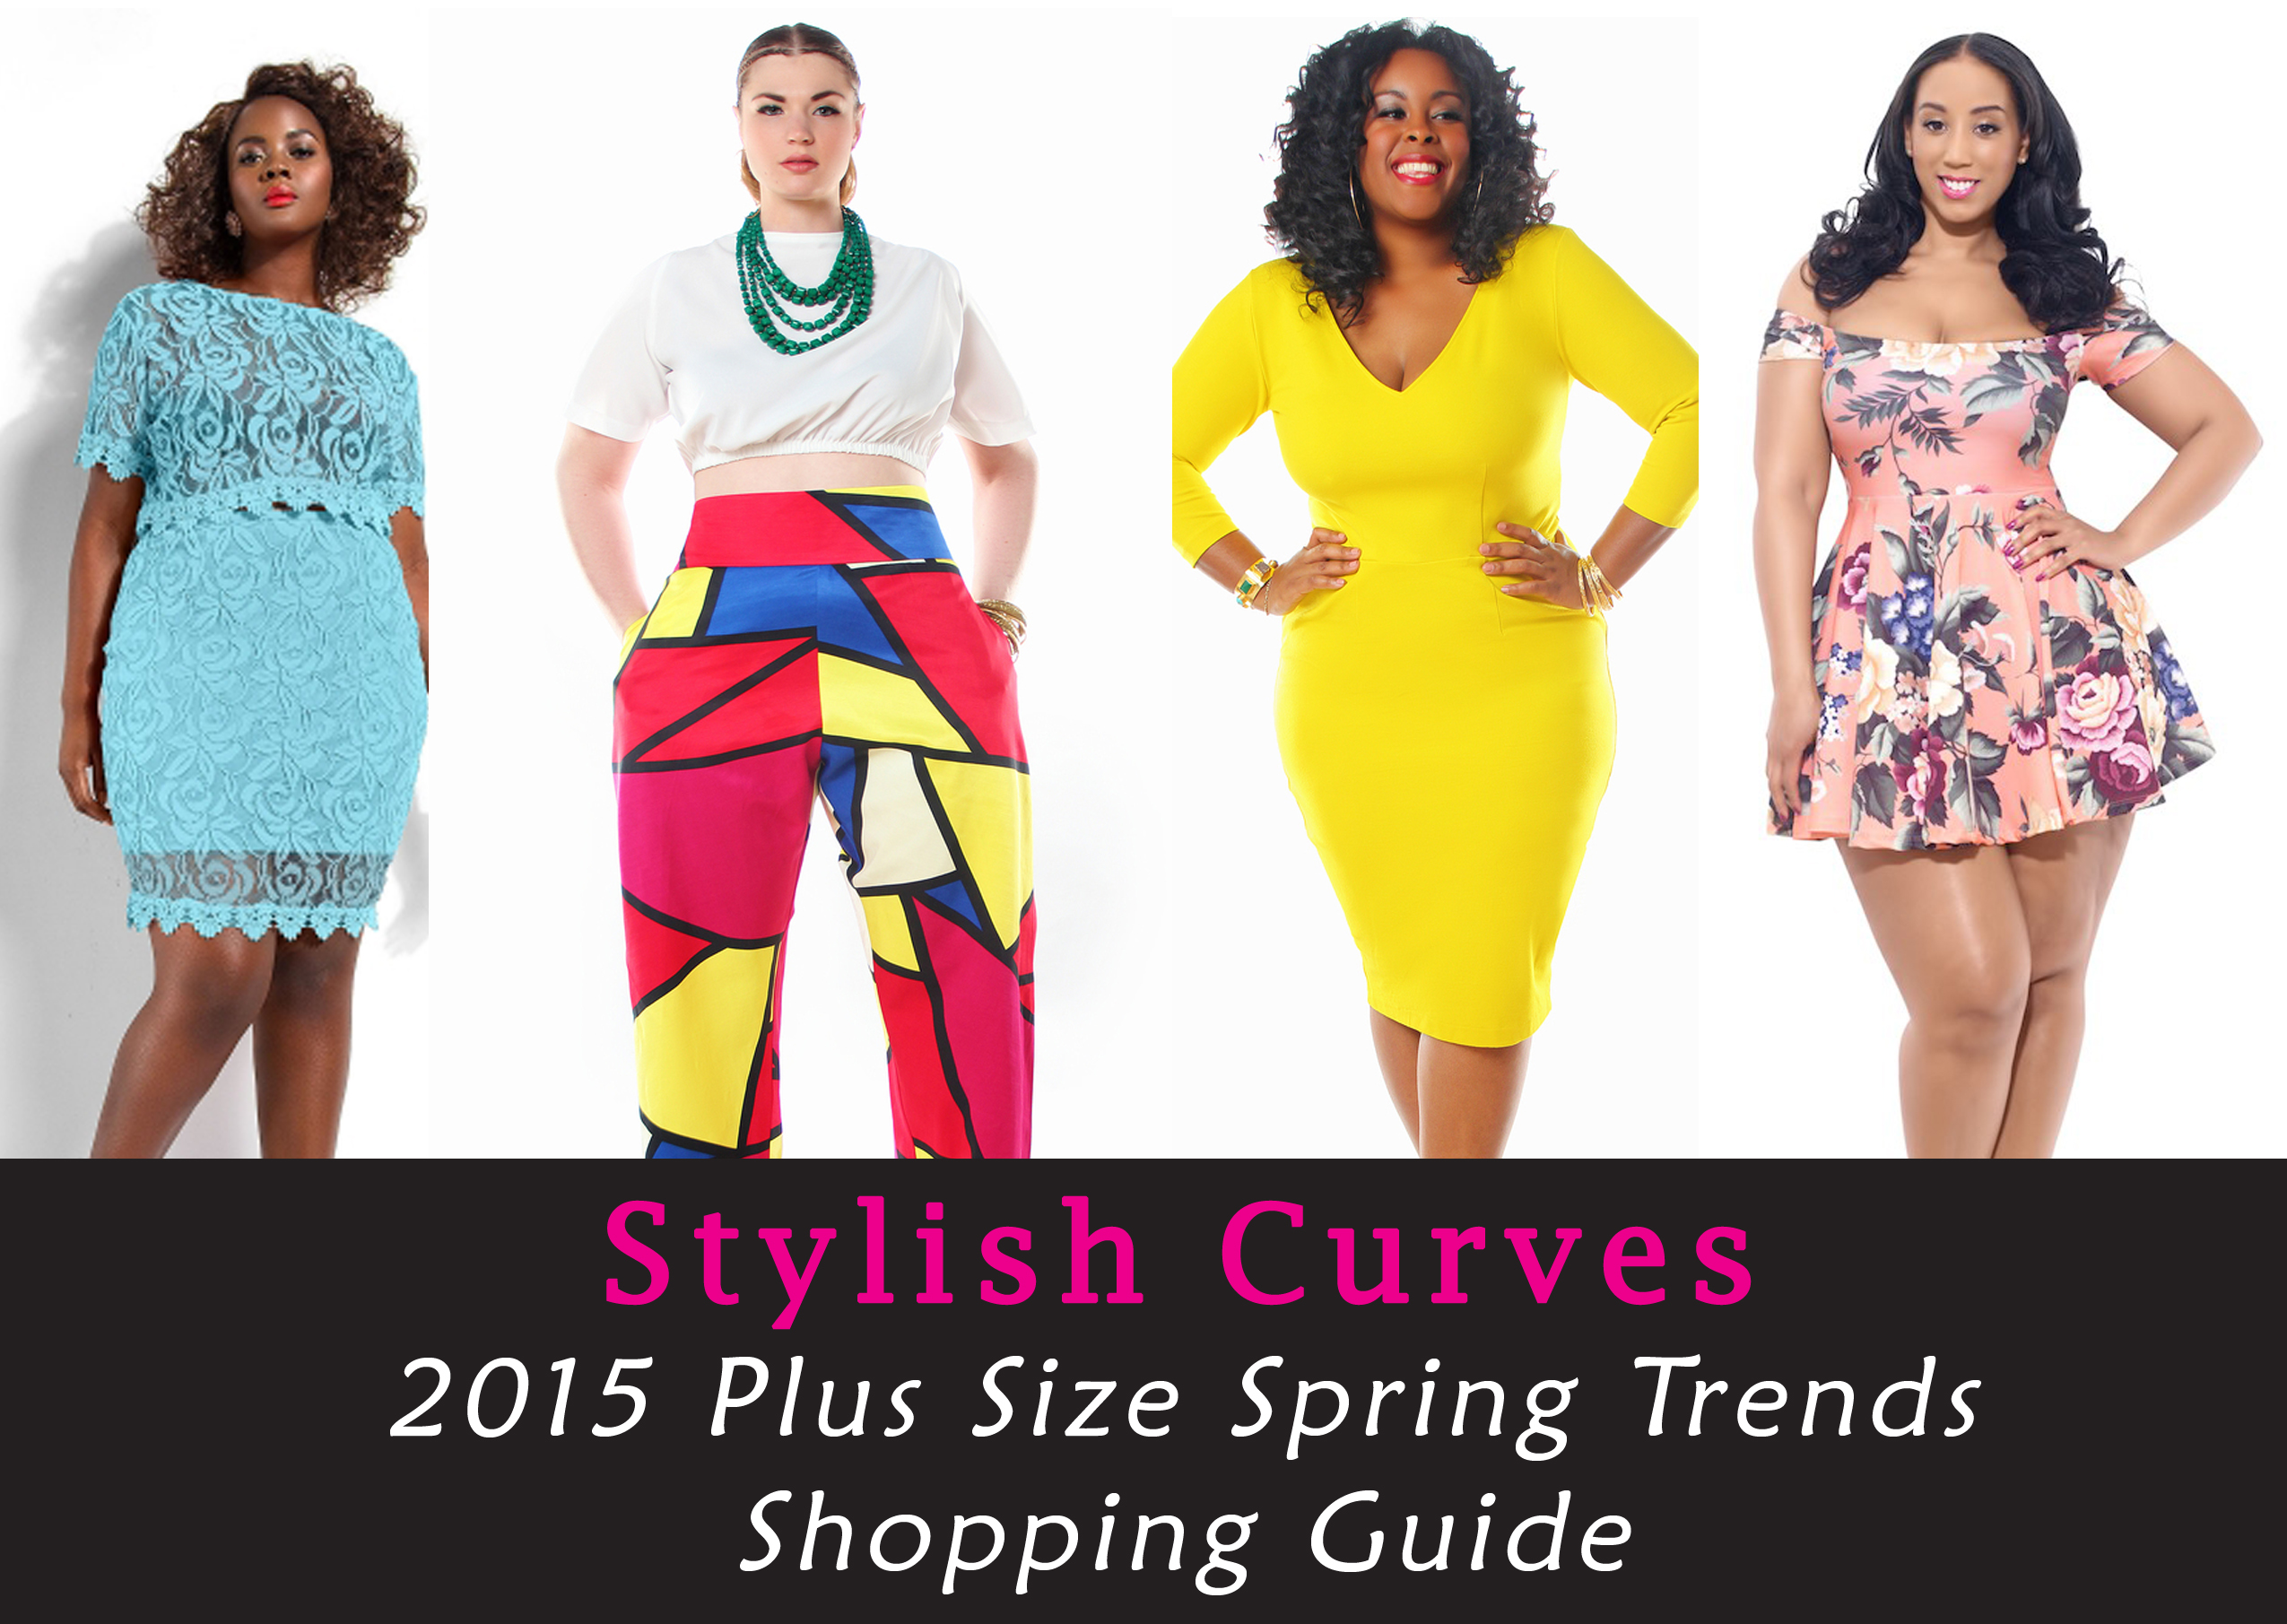 Plus size spring trend